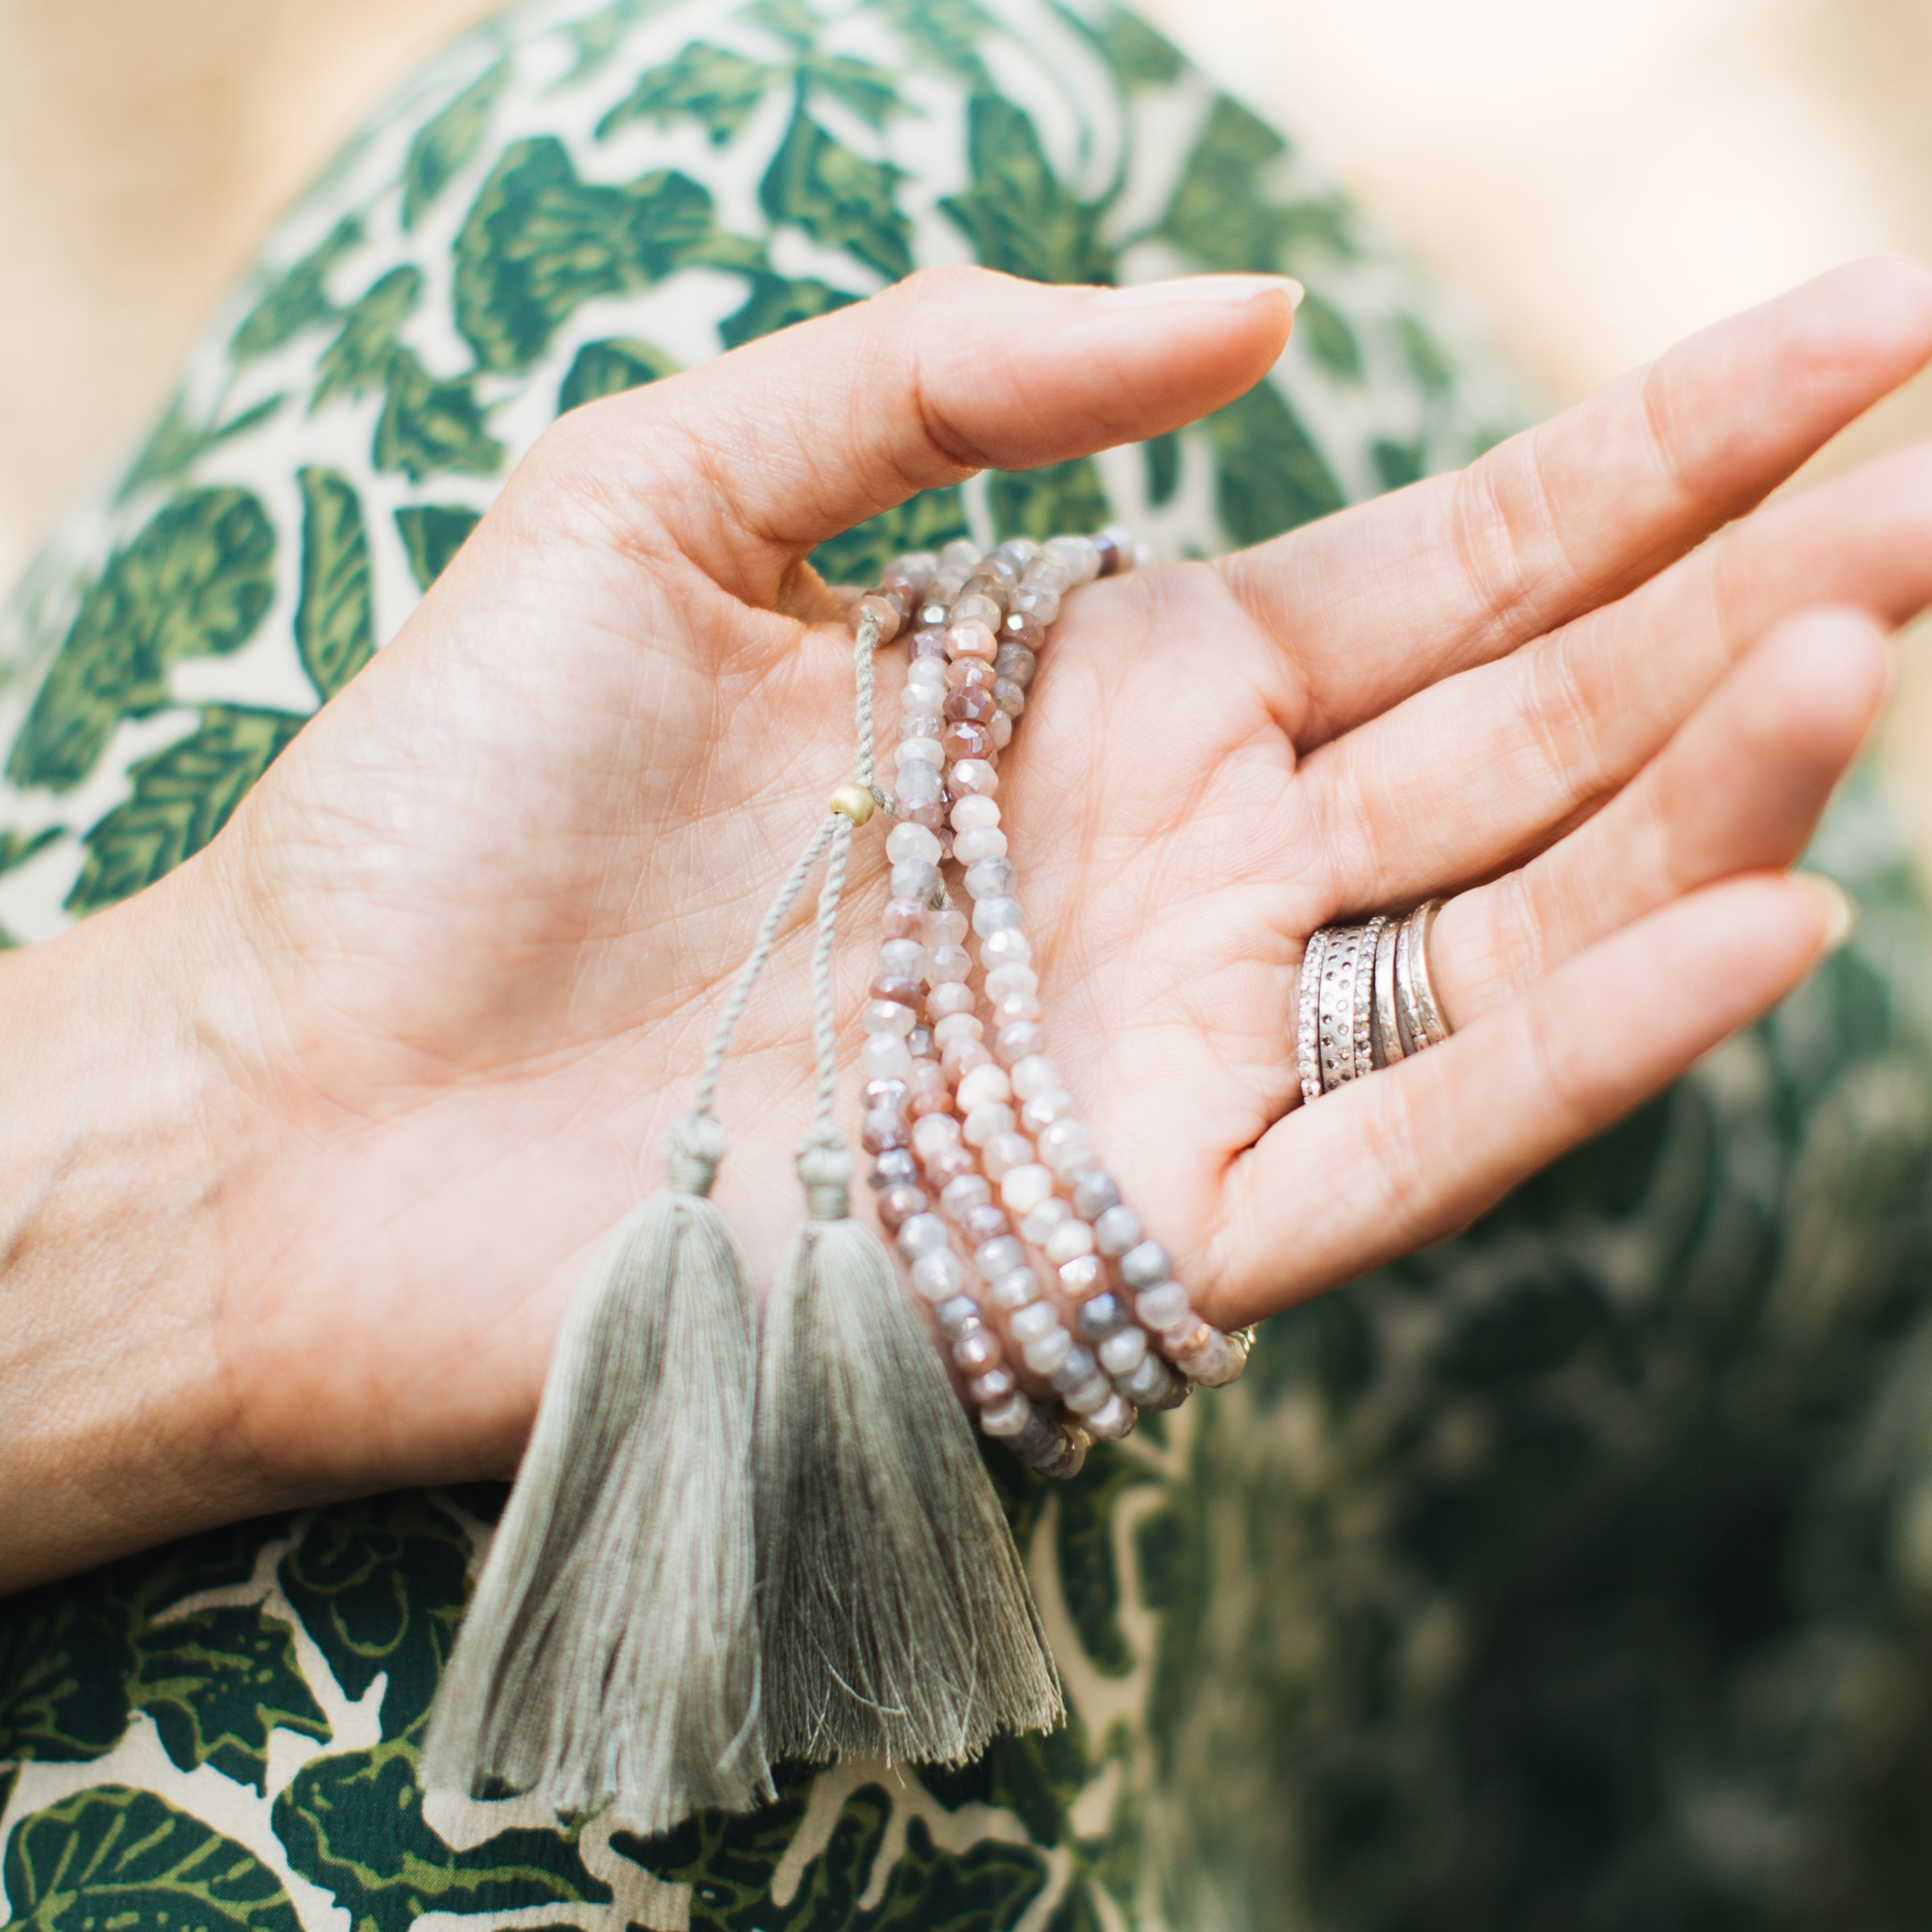 RobindiraUnsworth - Robindira's jewelry is handcrafted in Petaluma, CA. We adore Robindira's use of natural materials and beautiful color combinations. Her creations are the perfect everyday piece and always delight when given as a gift.